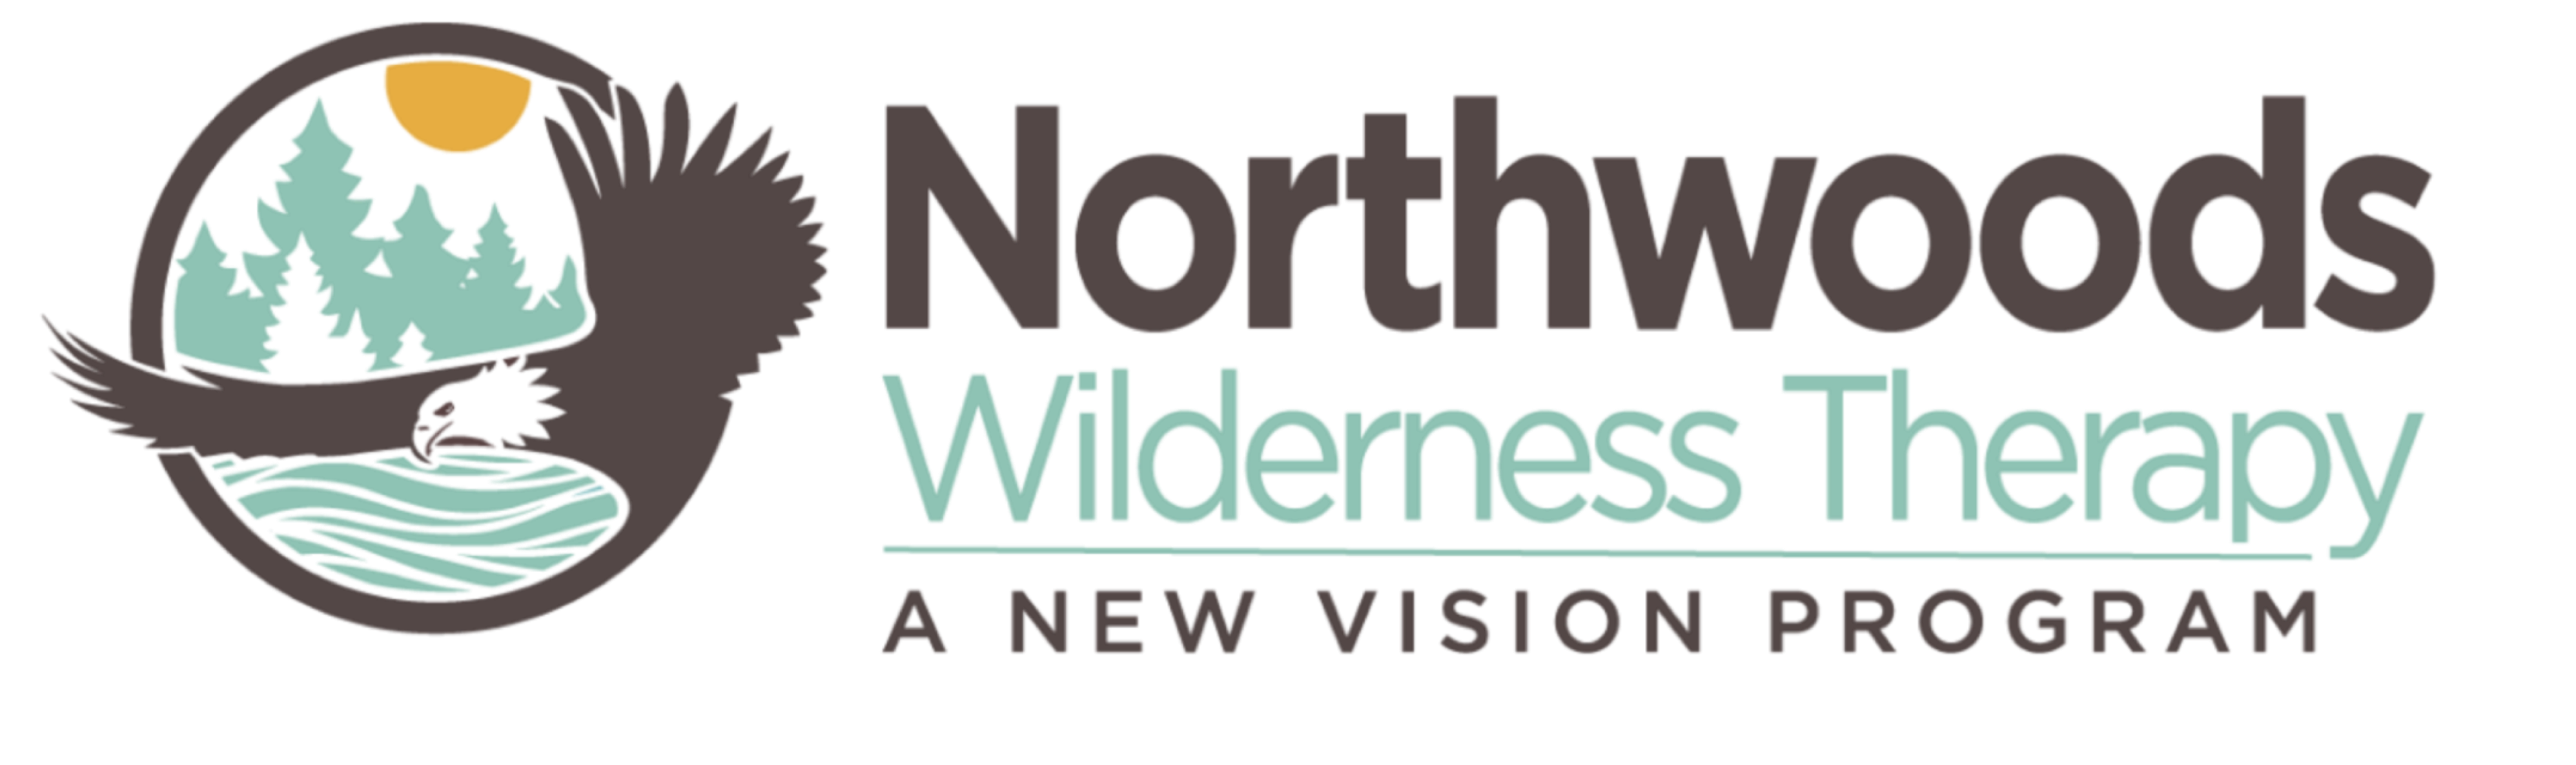 Northwoods Wilderness Therapy, A New Vision Program